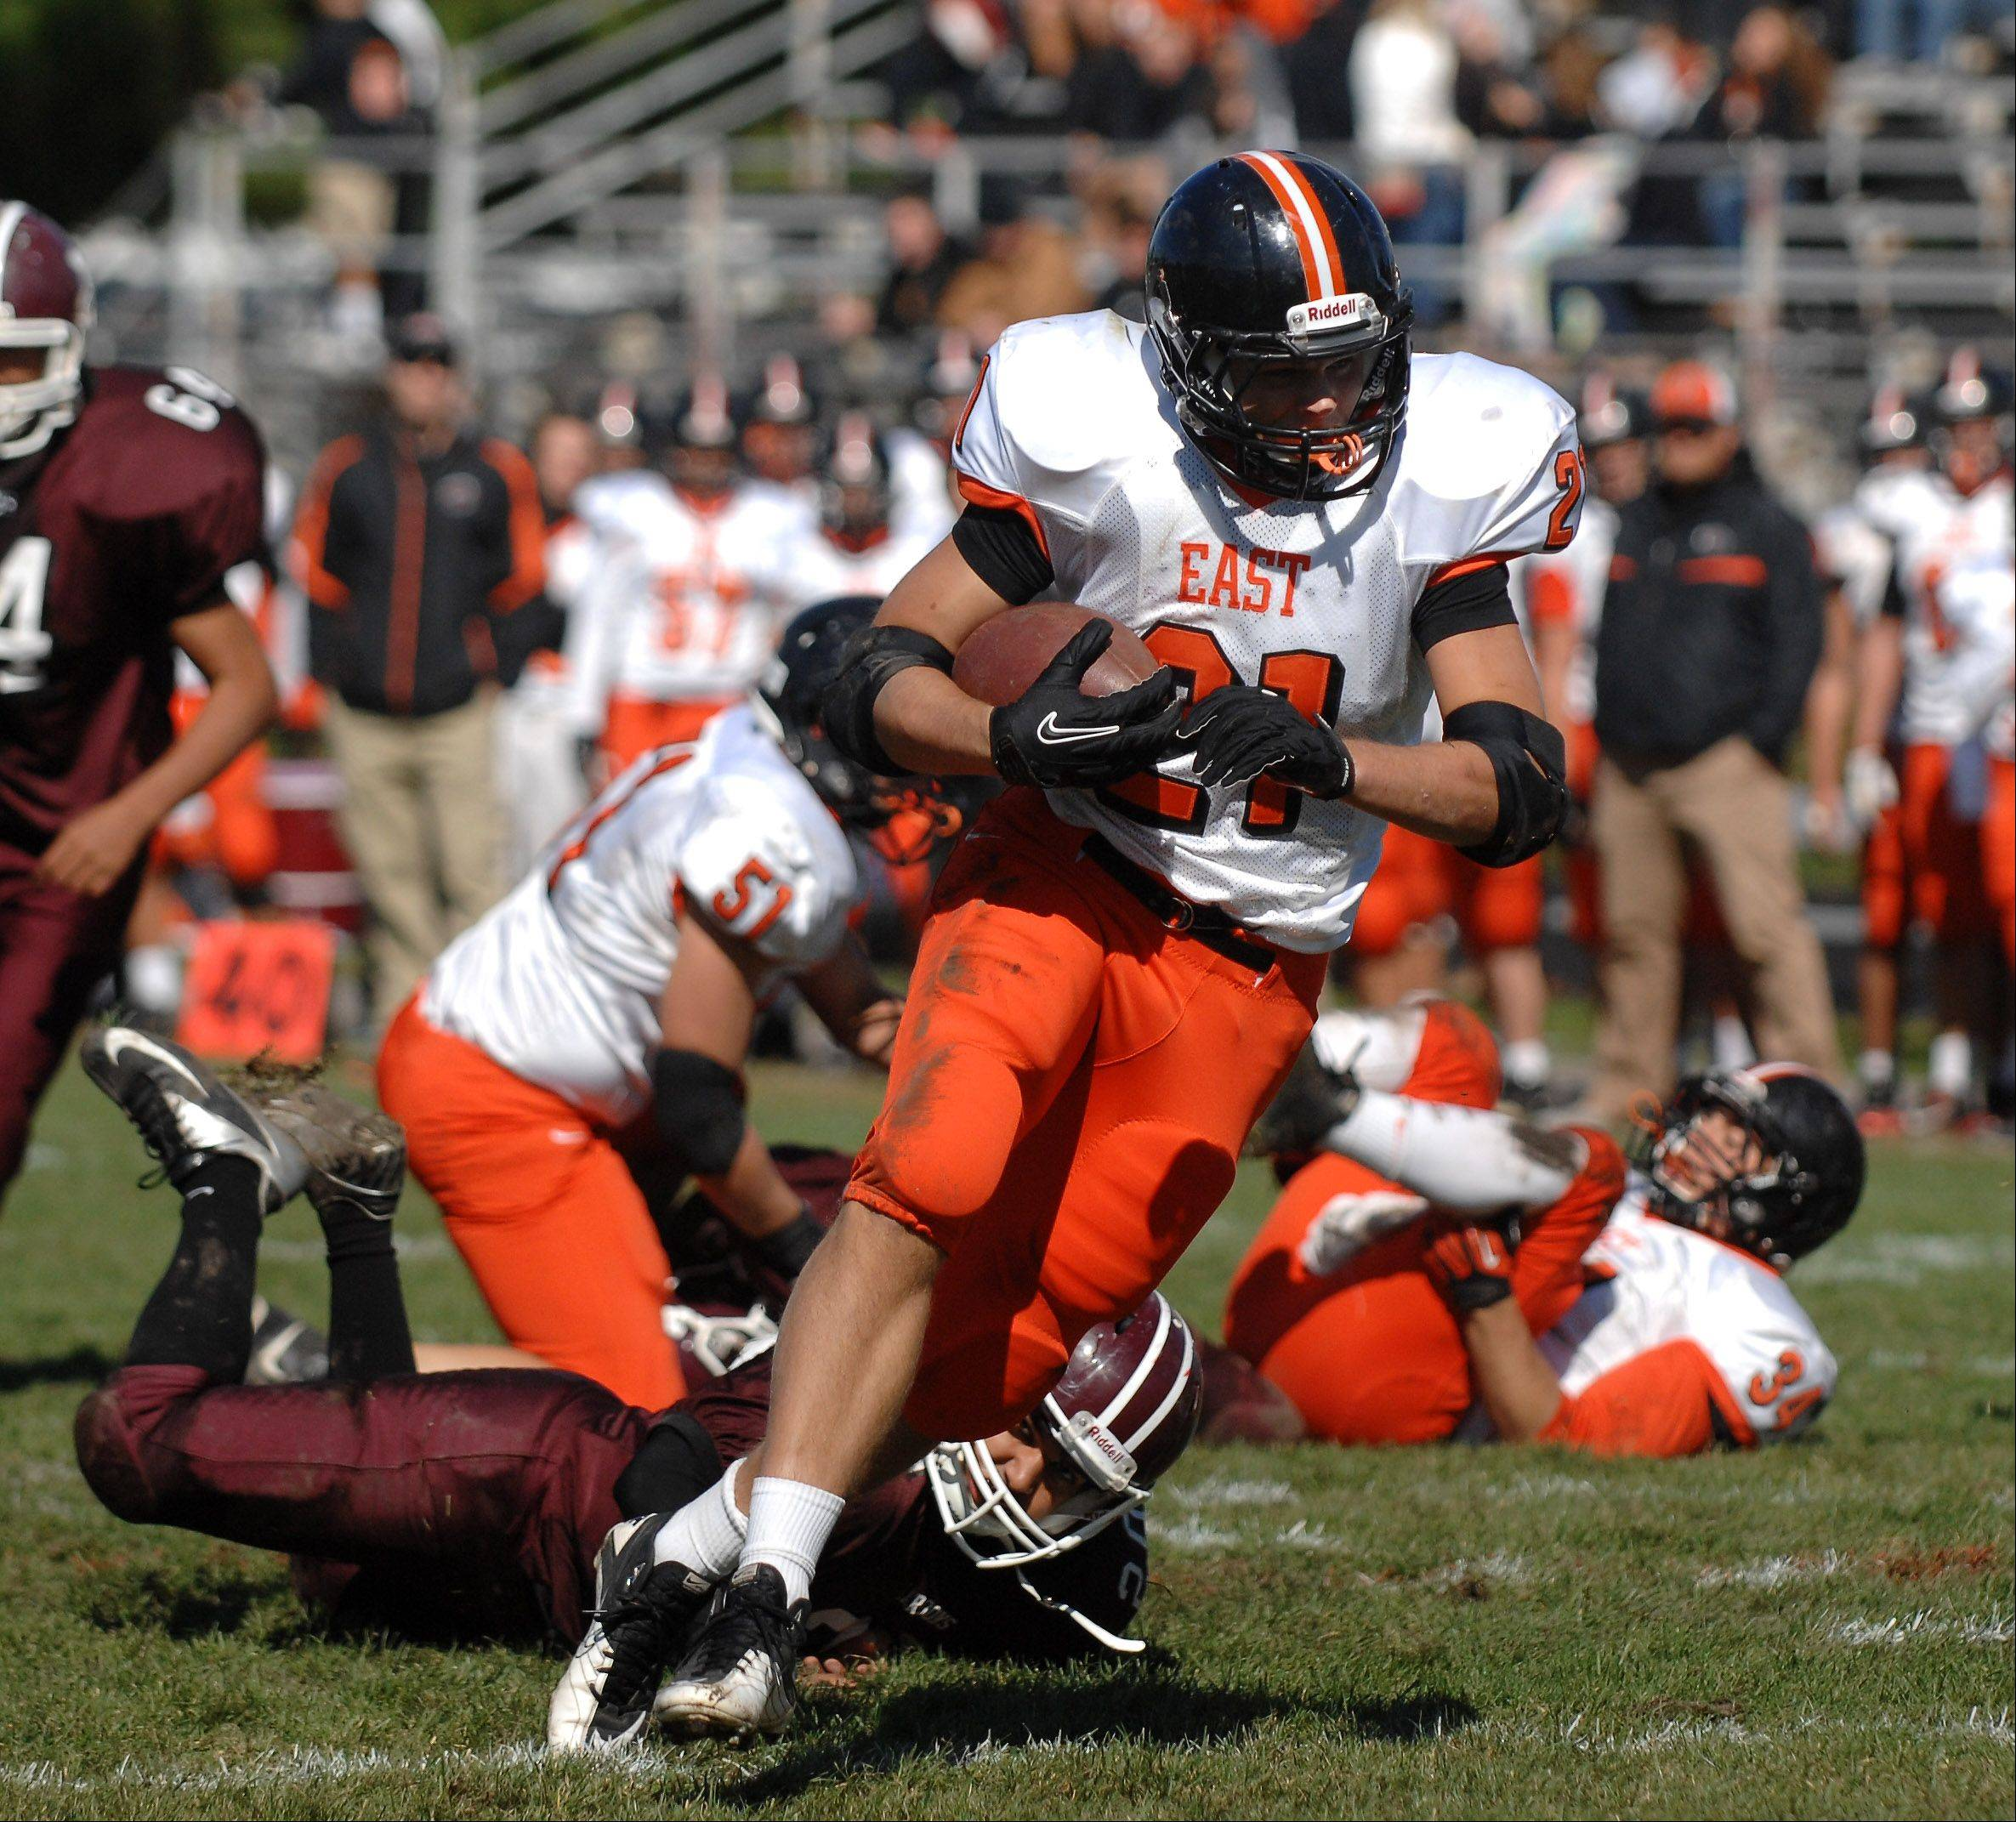 St. Charles East's Erik Anderson shed a number of Elgin tacklers en route to a second quarter touchdown during Saturday's game at Memorial Field in Elgin.